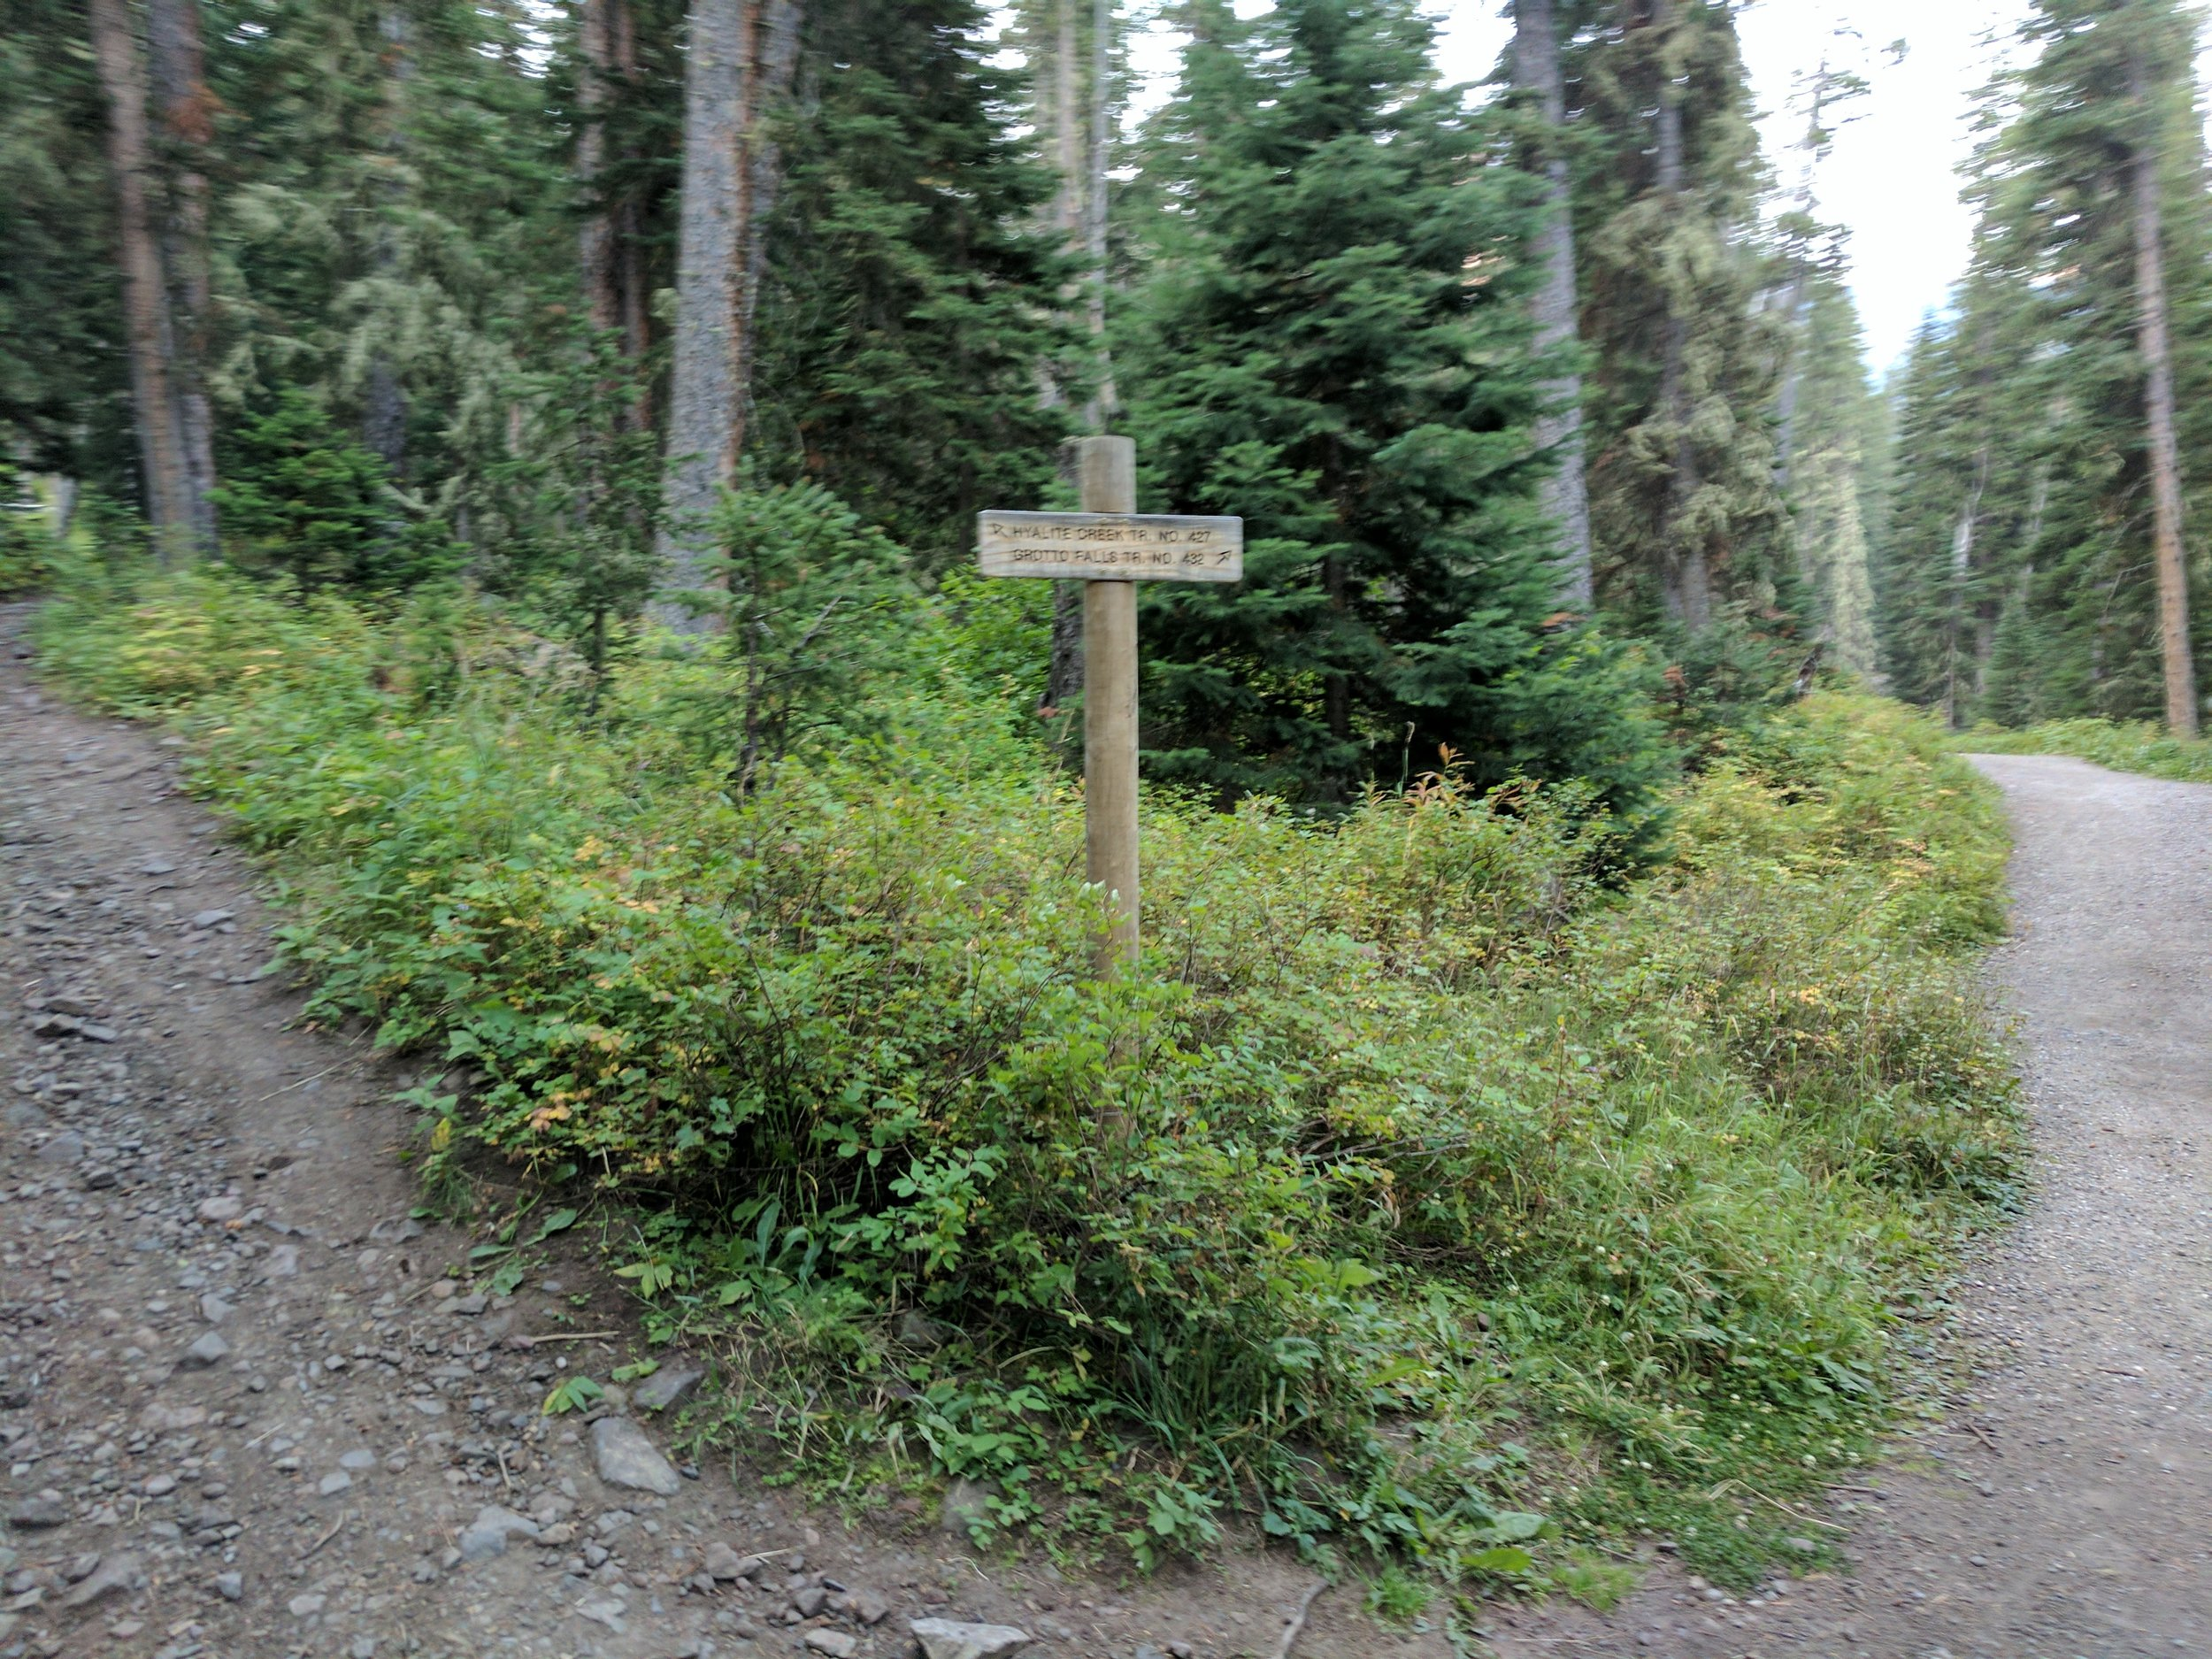 One of the splits between Hyalite and Grotto trails